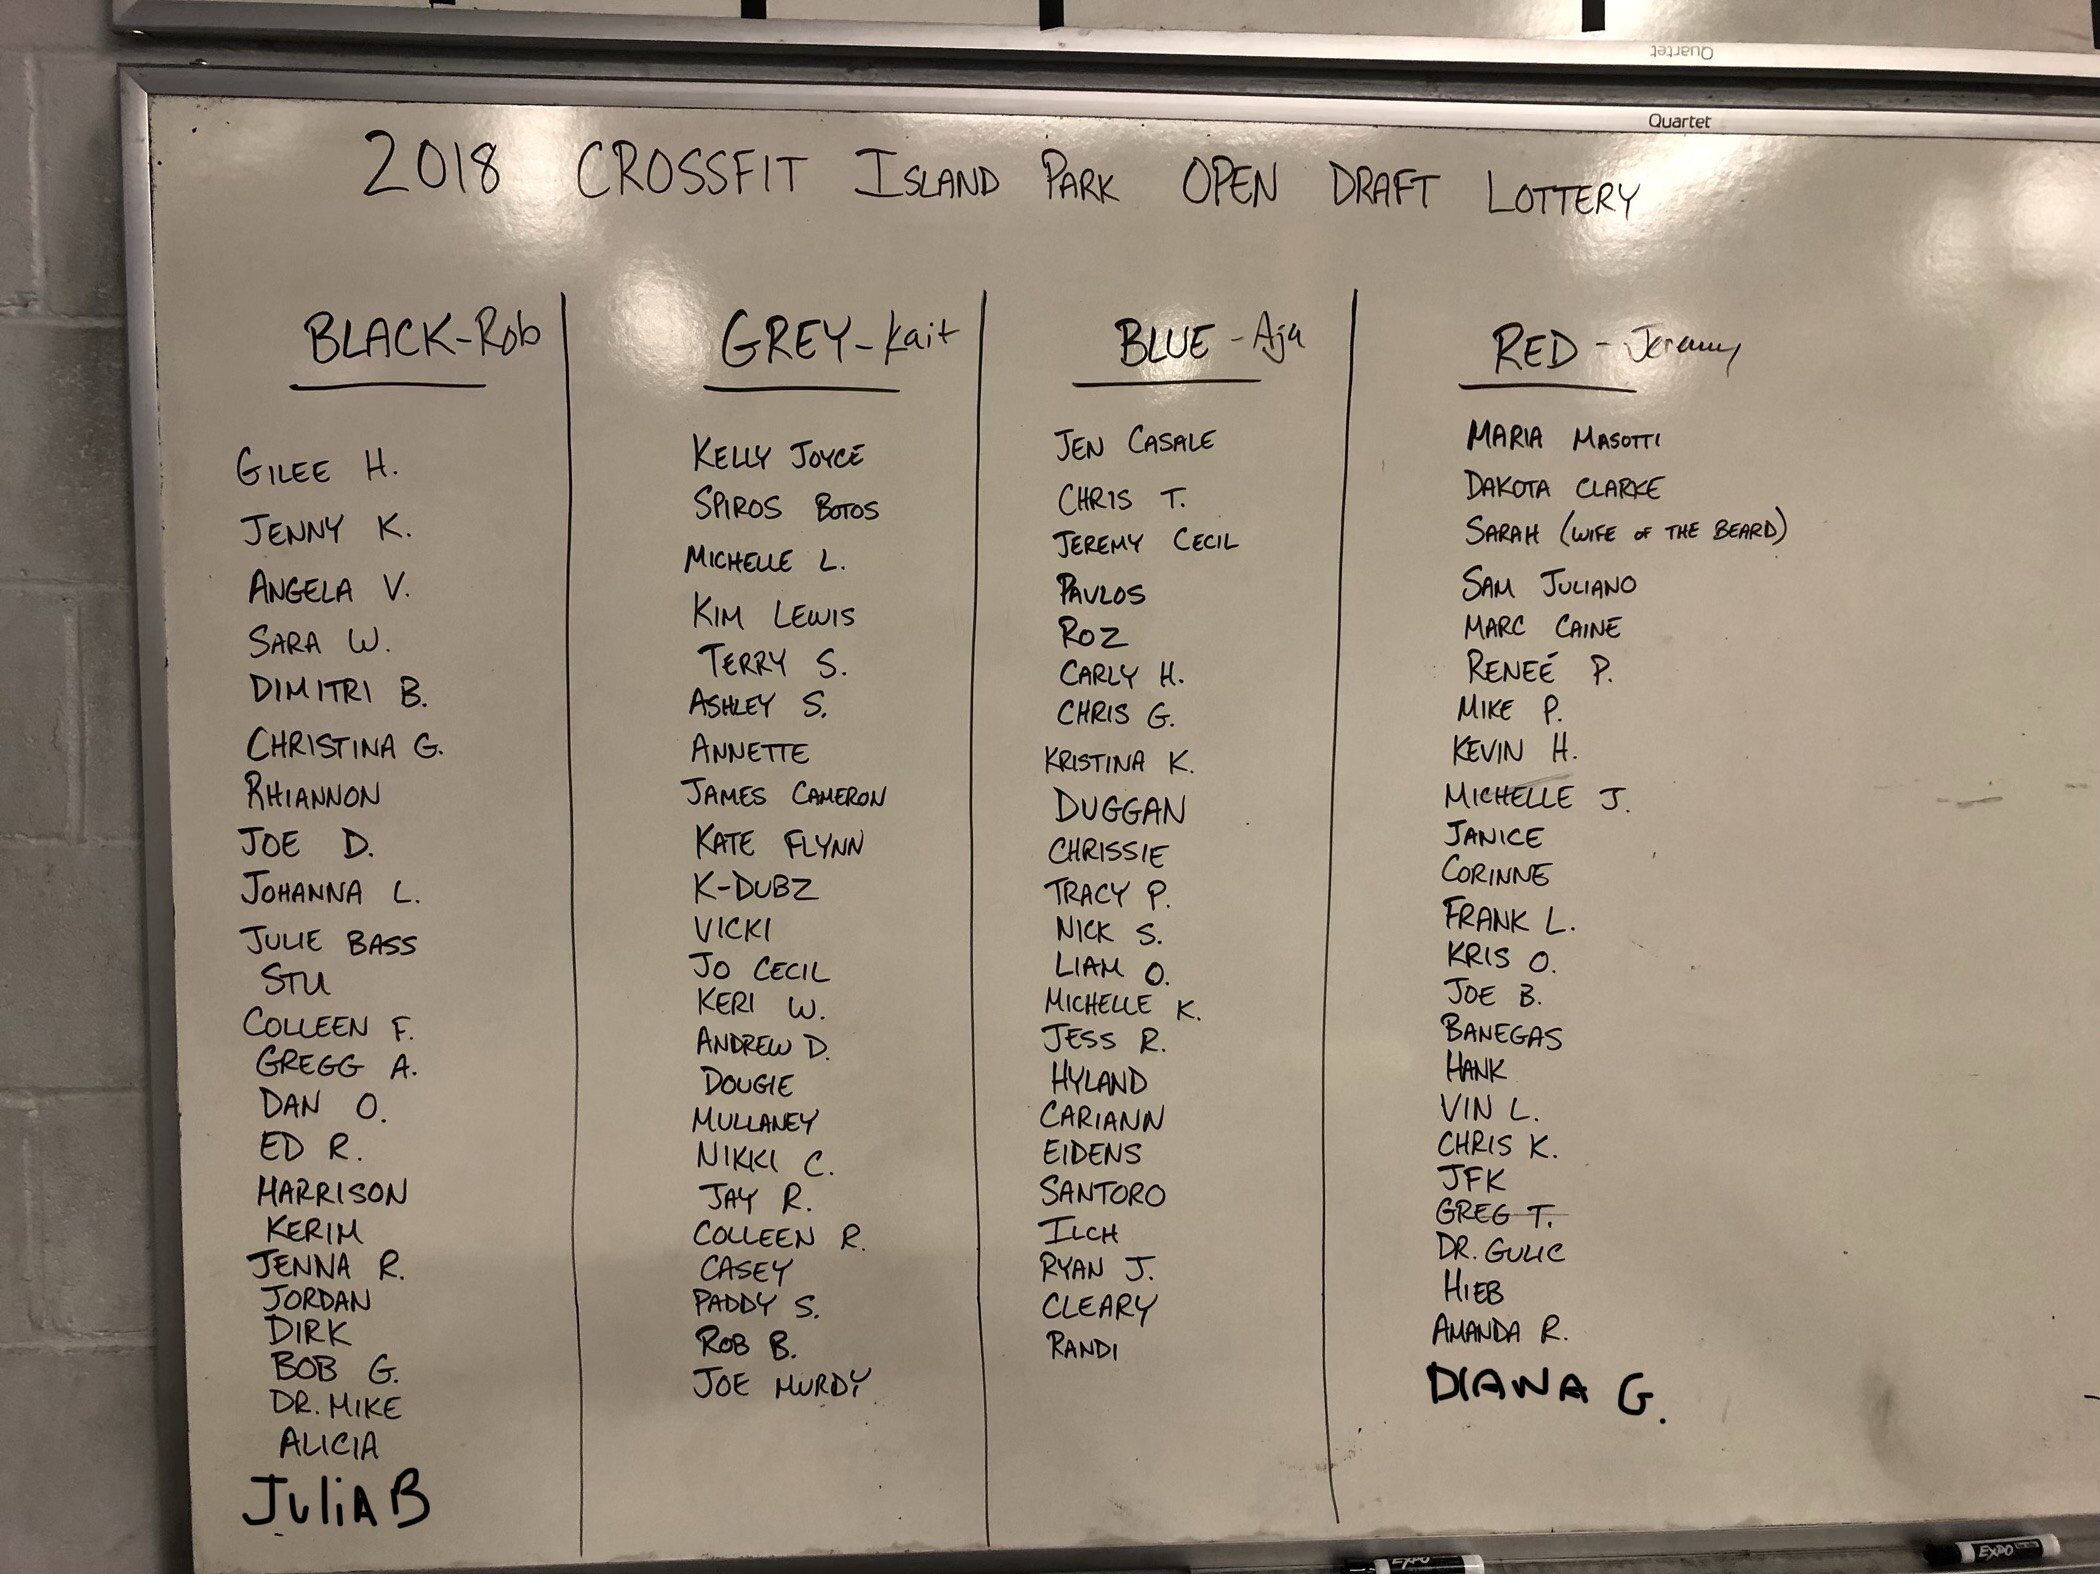 2018 CrossFit Island Park Open Teams